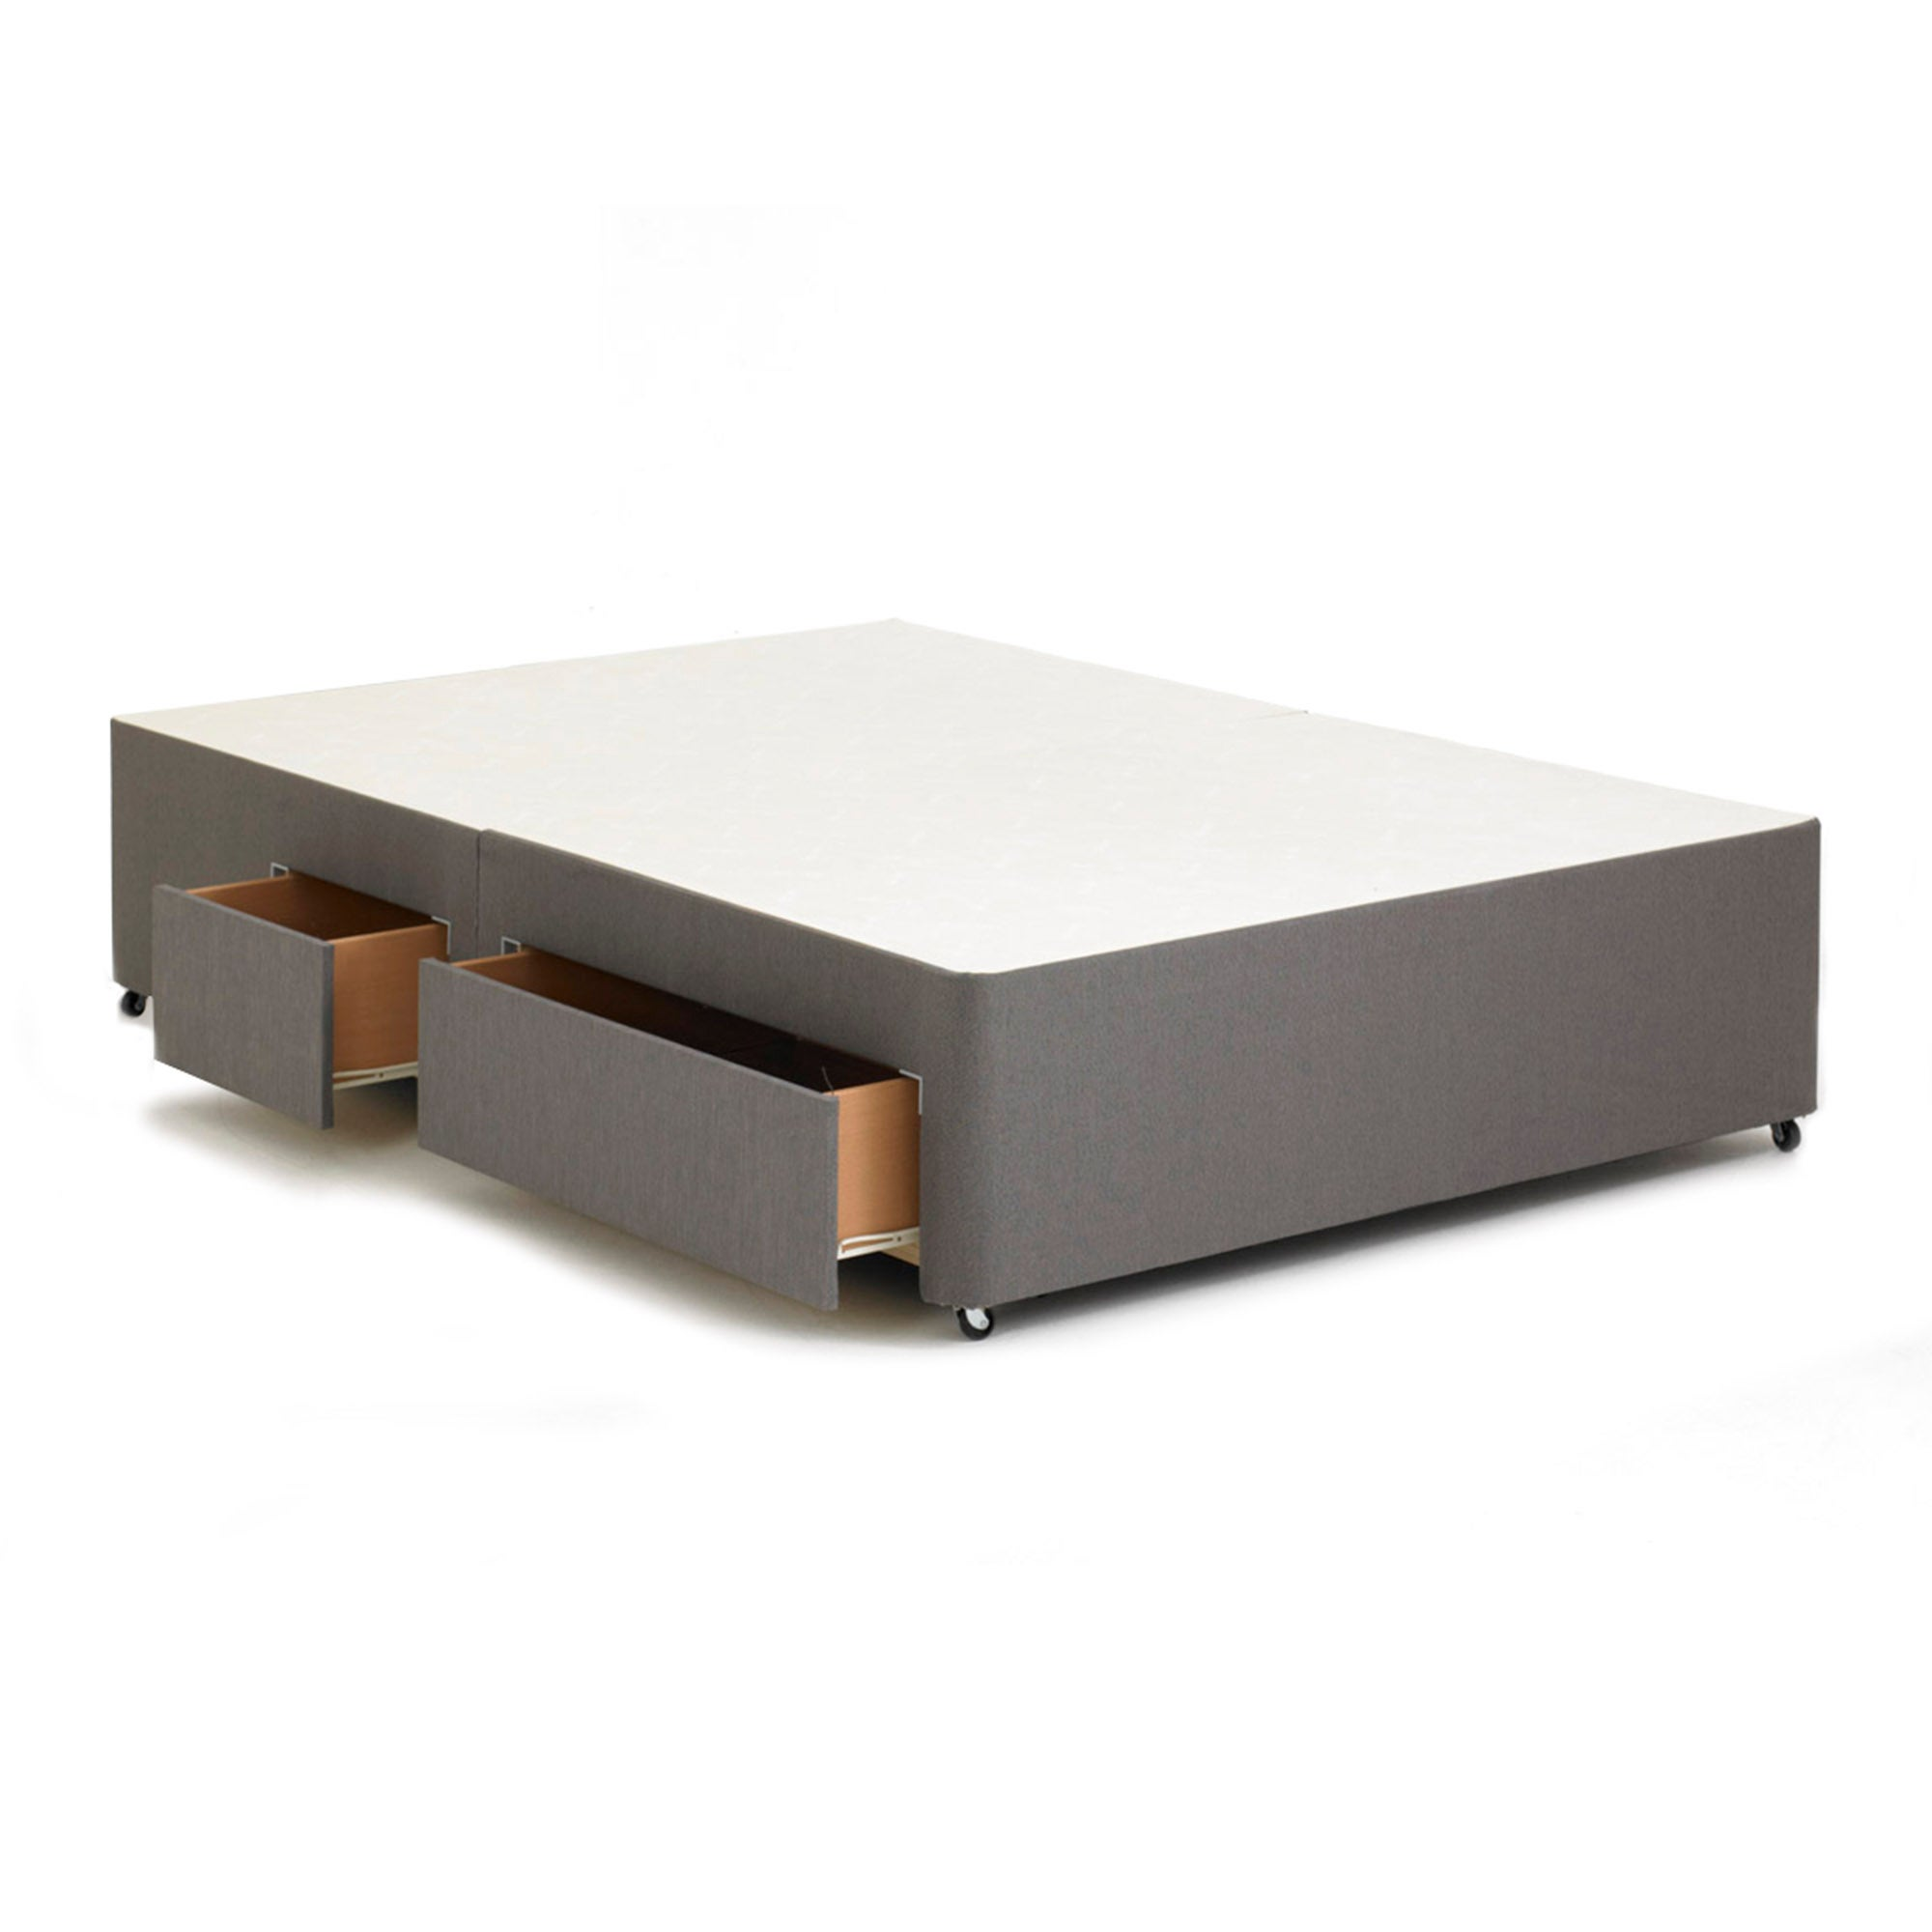 Padded Divan Base with 2 Small Drawers & 2 Large Drawers